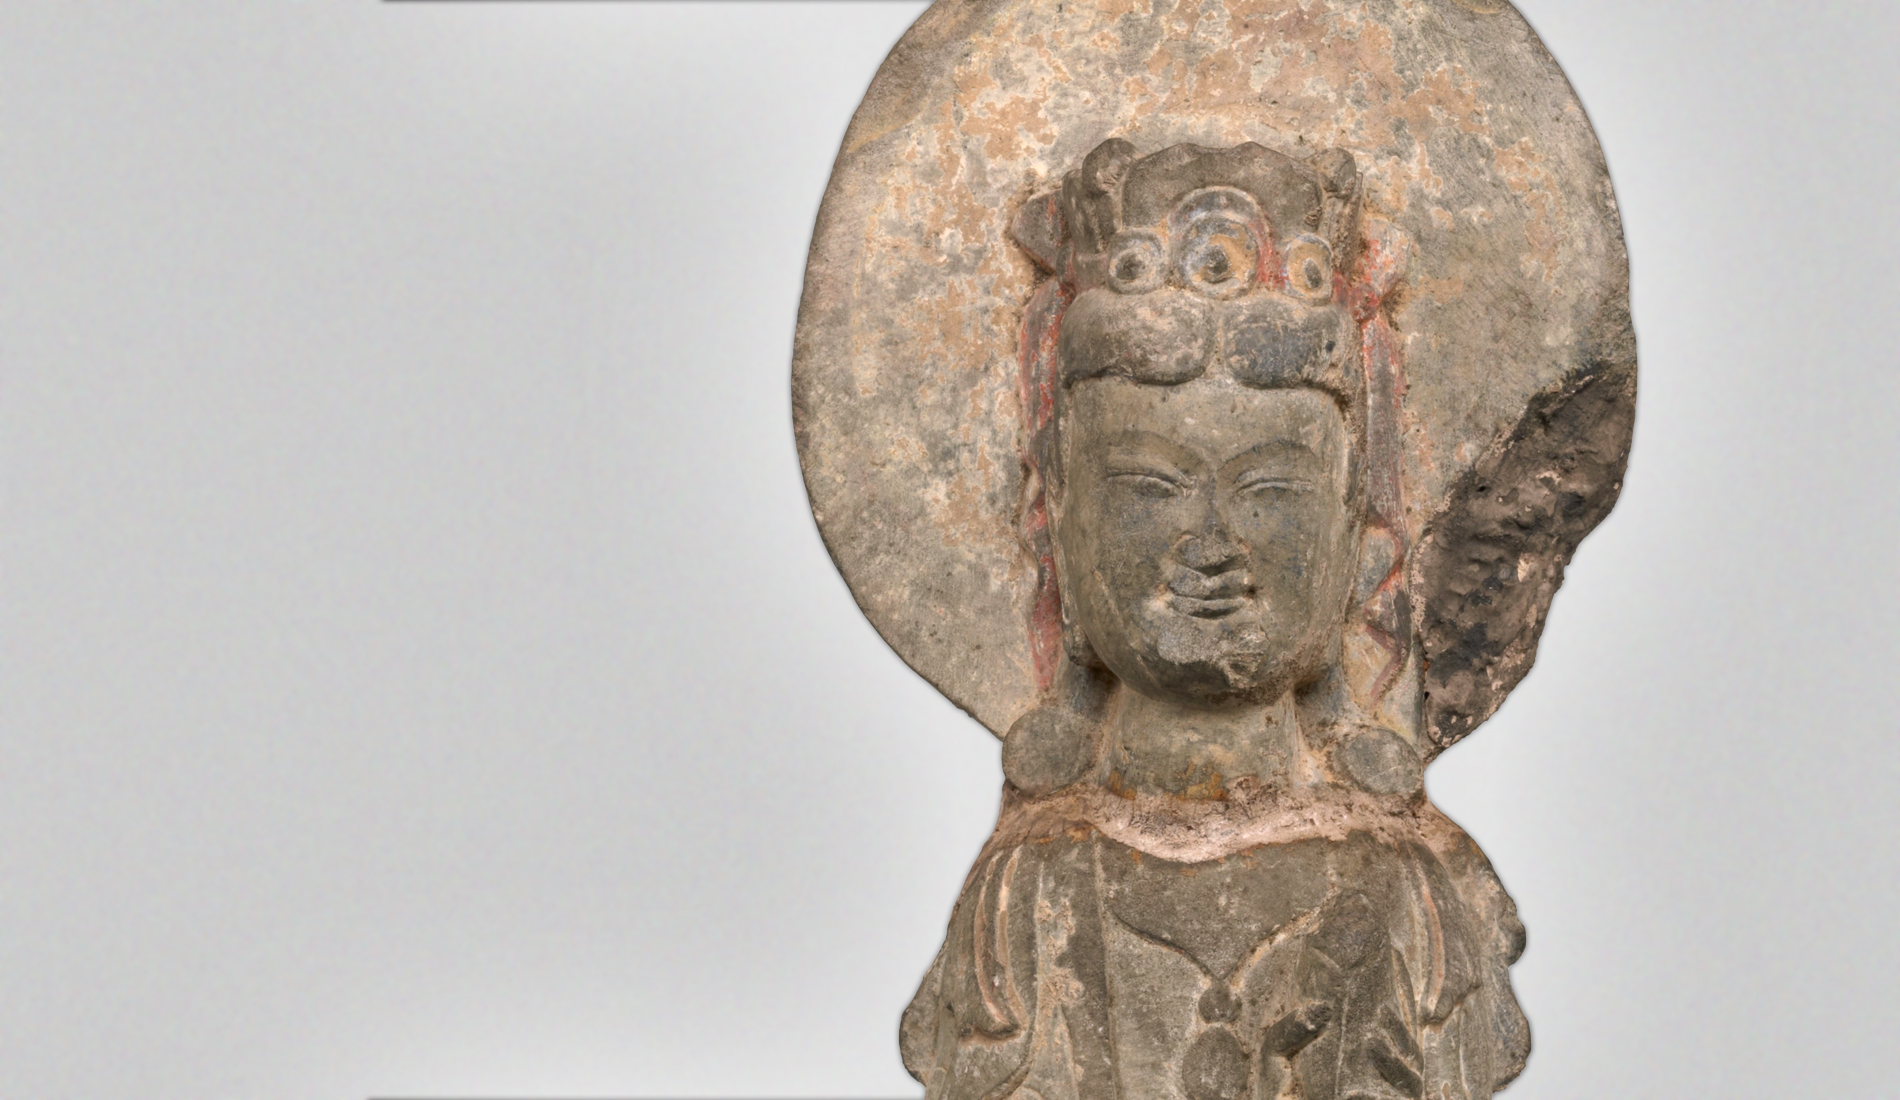 Highlights of Chinese Sculpture in the TNM Collection